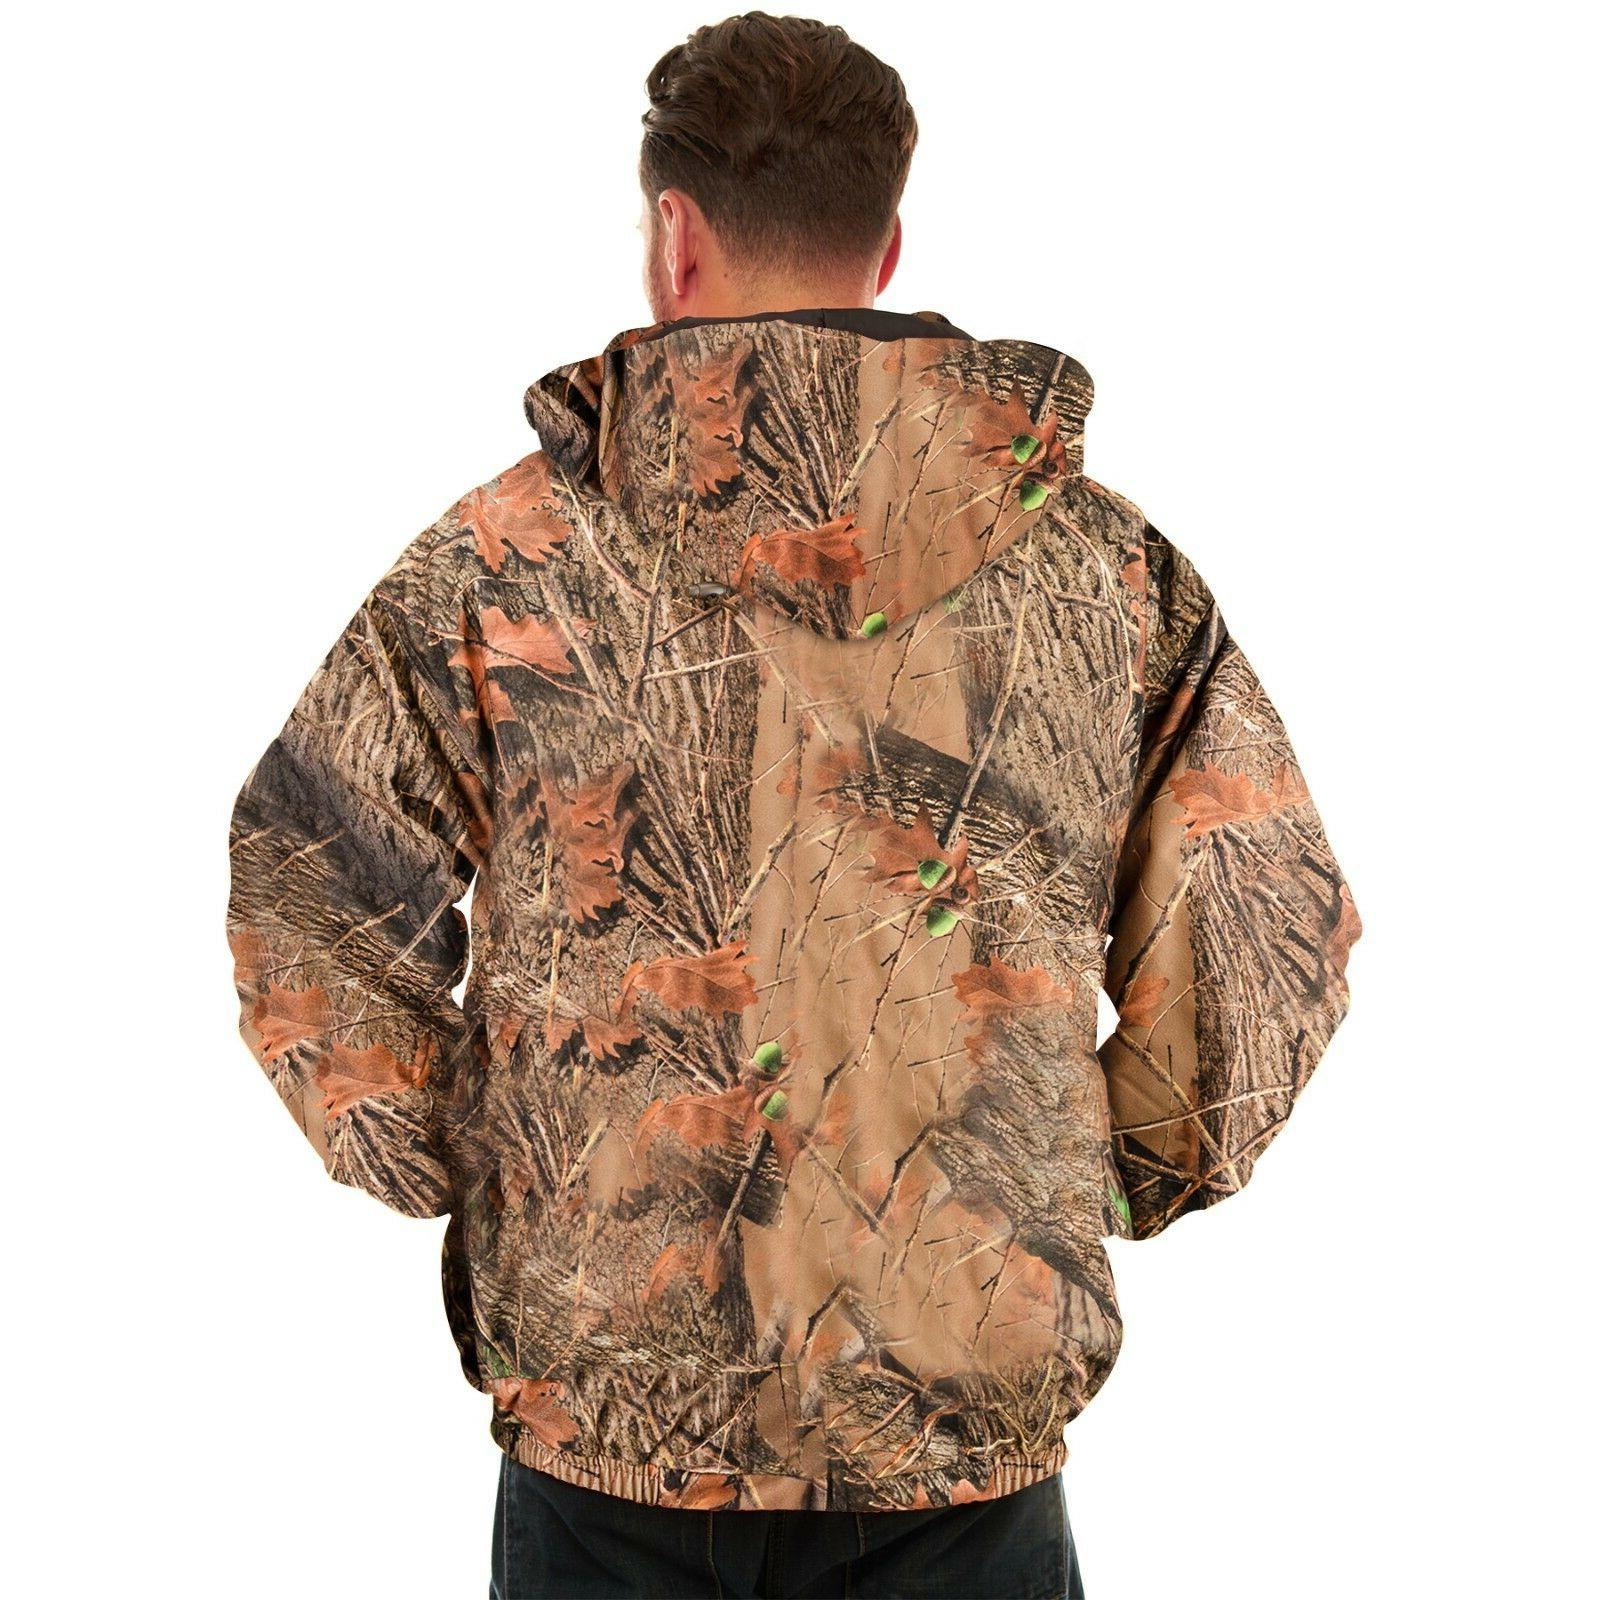 MENS CAMOUFLAGE TANKER JACKET- HUNTING - CAMPING